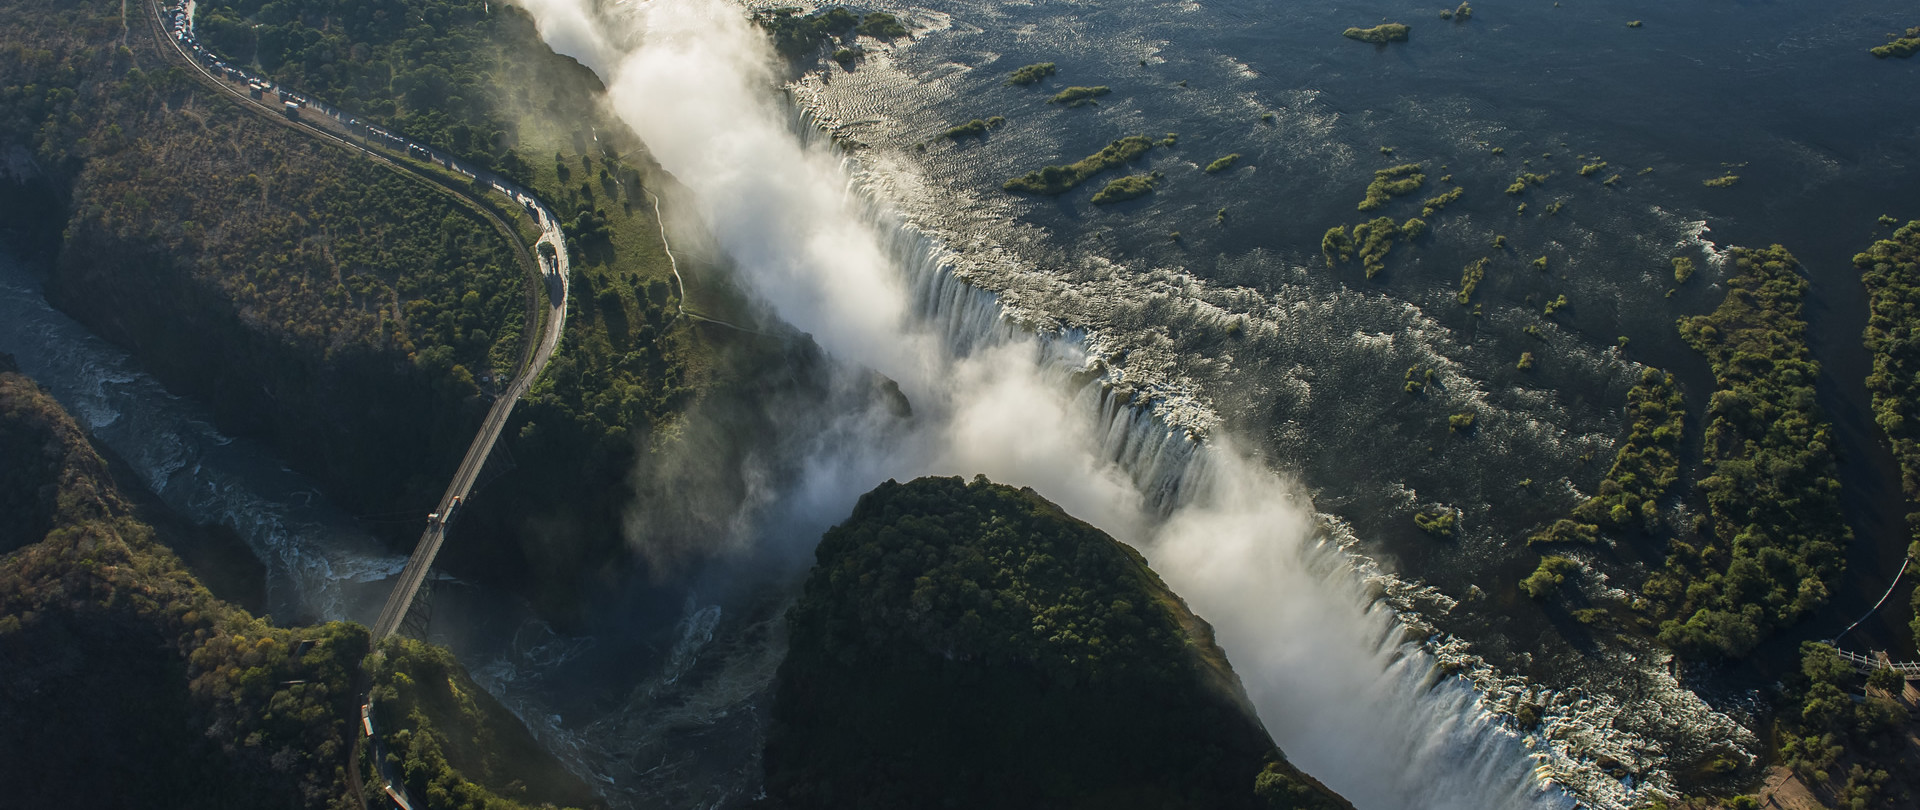 Experience mother nature's rawest power at Victoria Falls